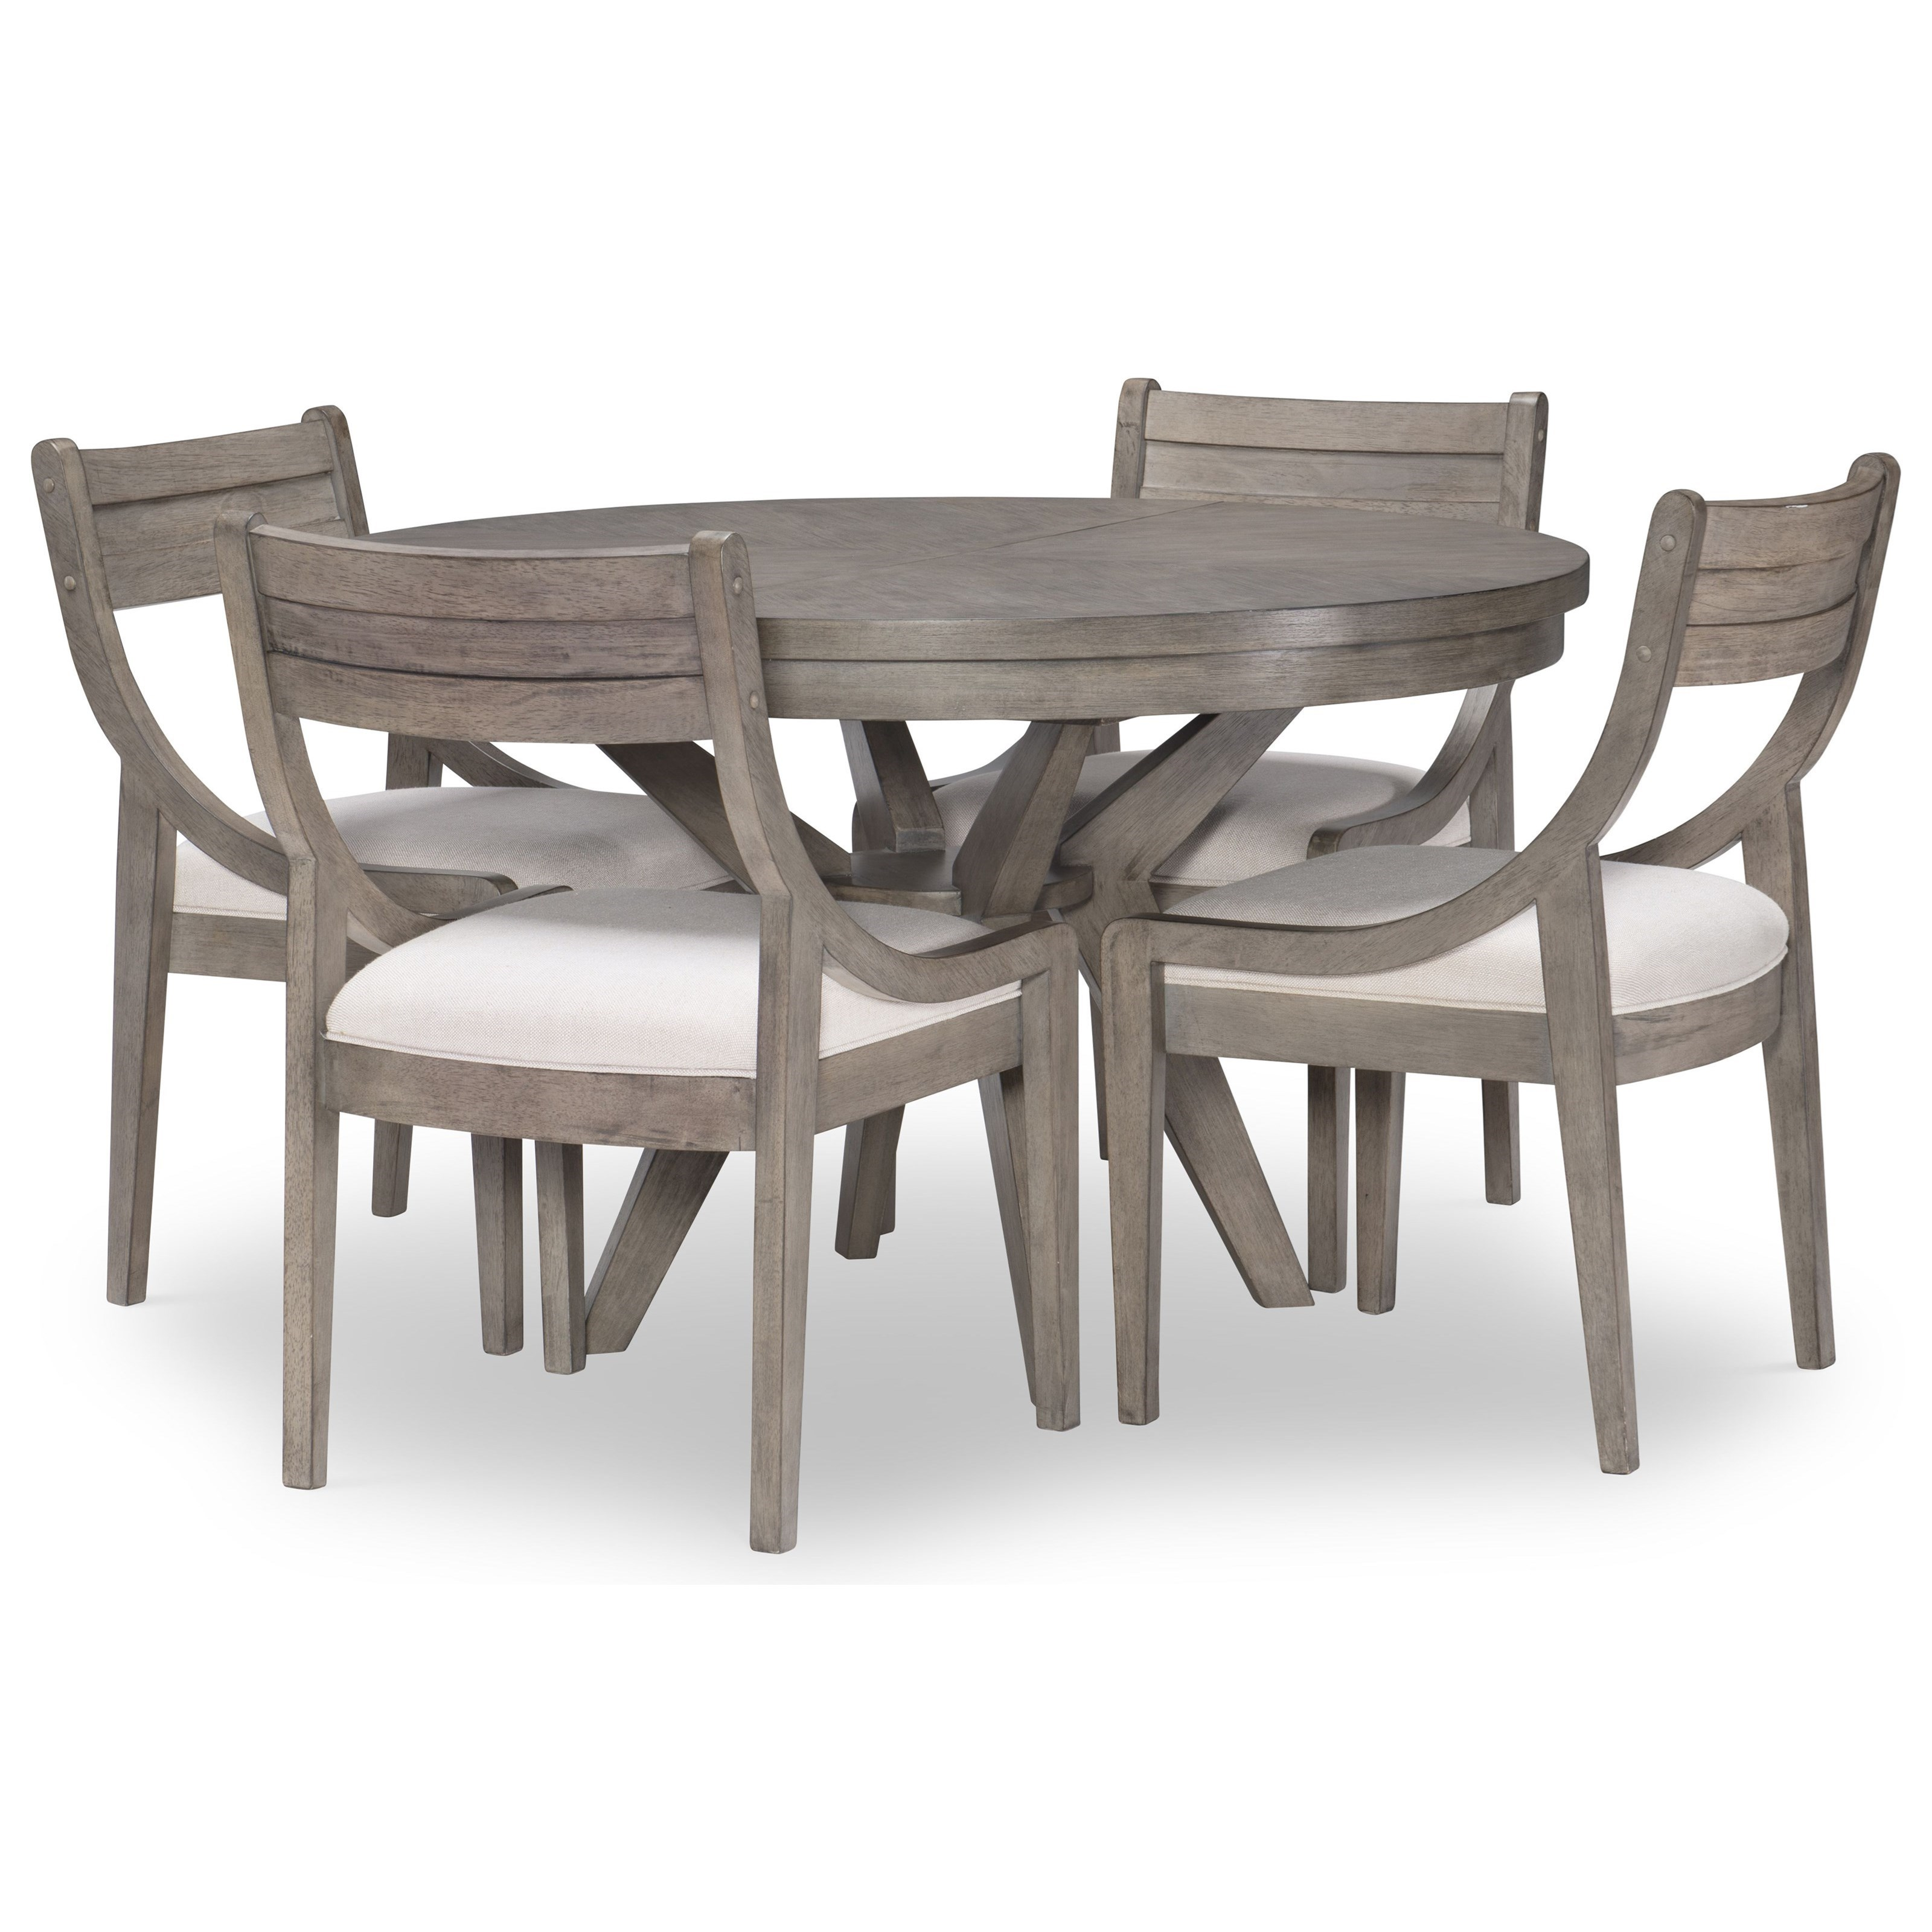 Greystone 5-Piece Table and Chair Set by Legacy Classic at Johnny Janosik